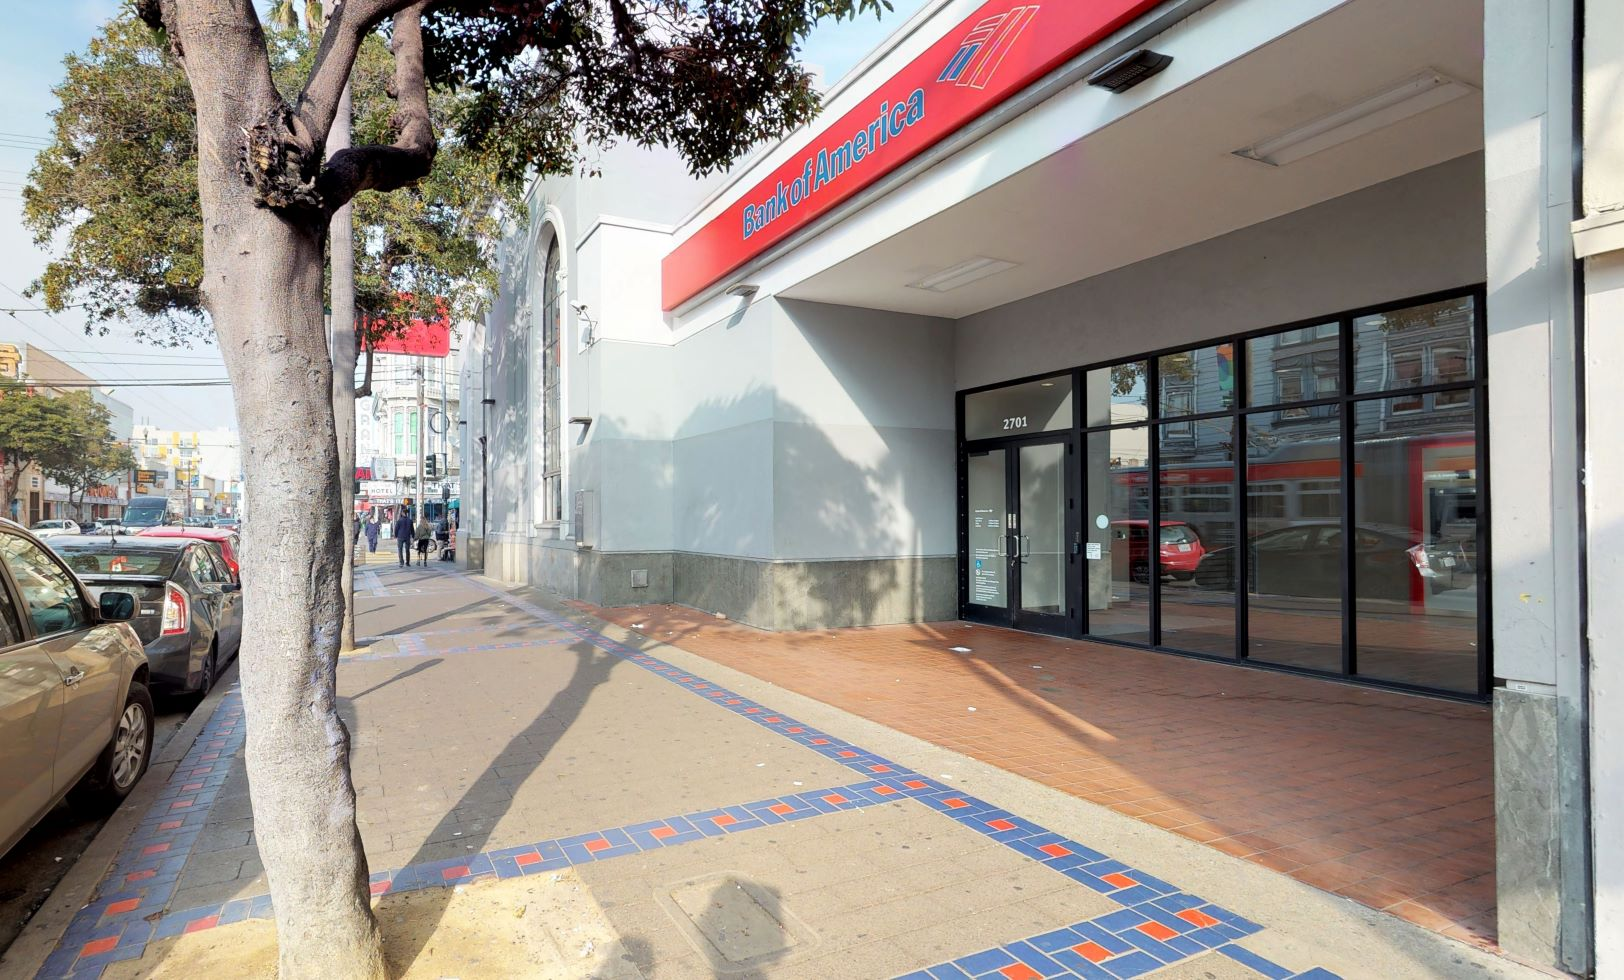 Bank of America financial center with walk-up ATM | 2701 Mission St, San Francisco, CA 94110